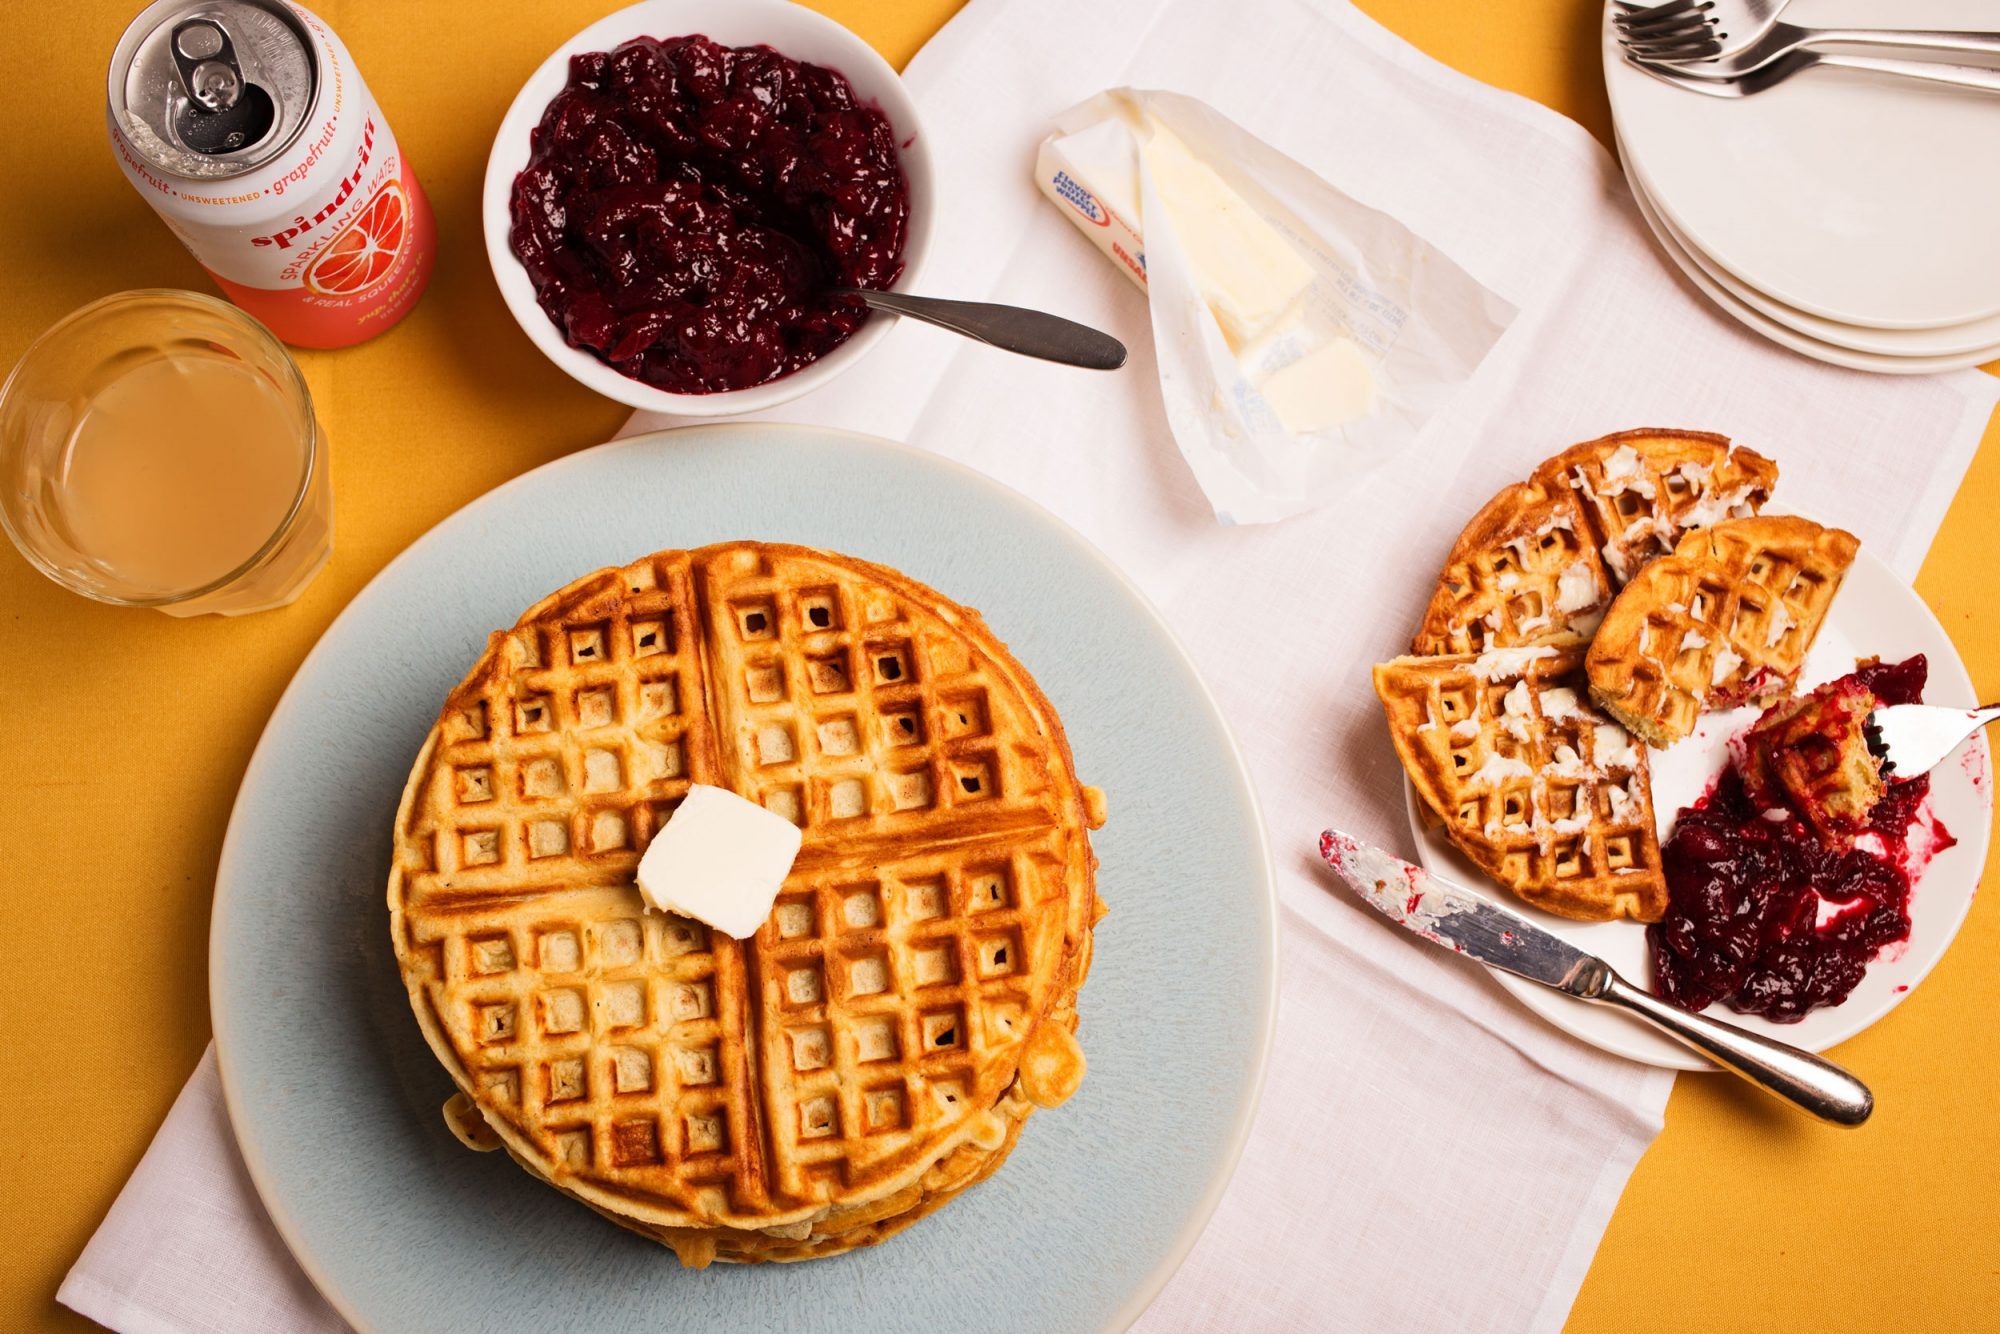 EC: Brown Sugar Waffles with Orange-Ginger Cranberry Compote